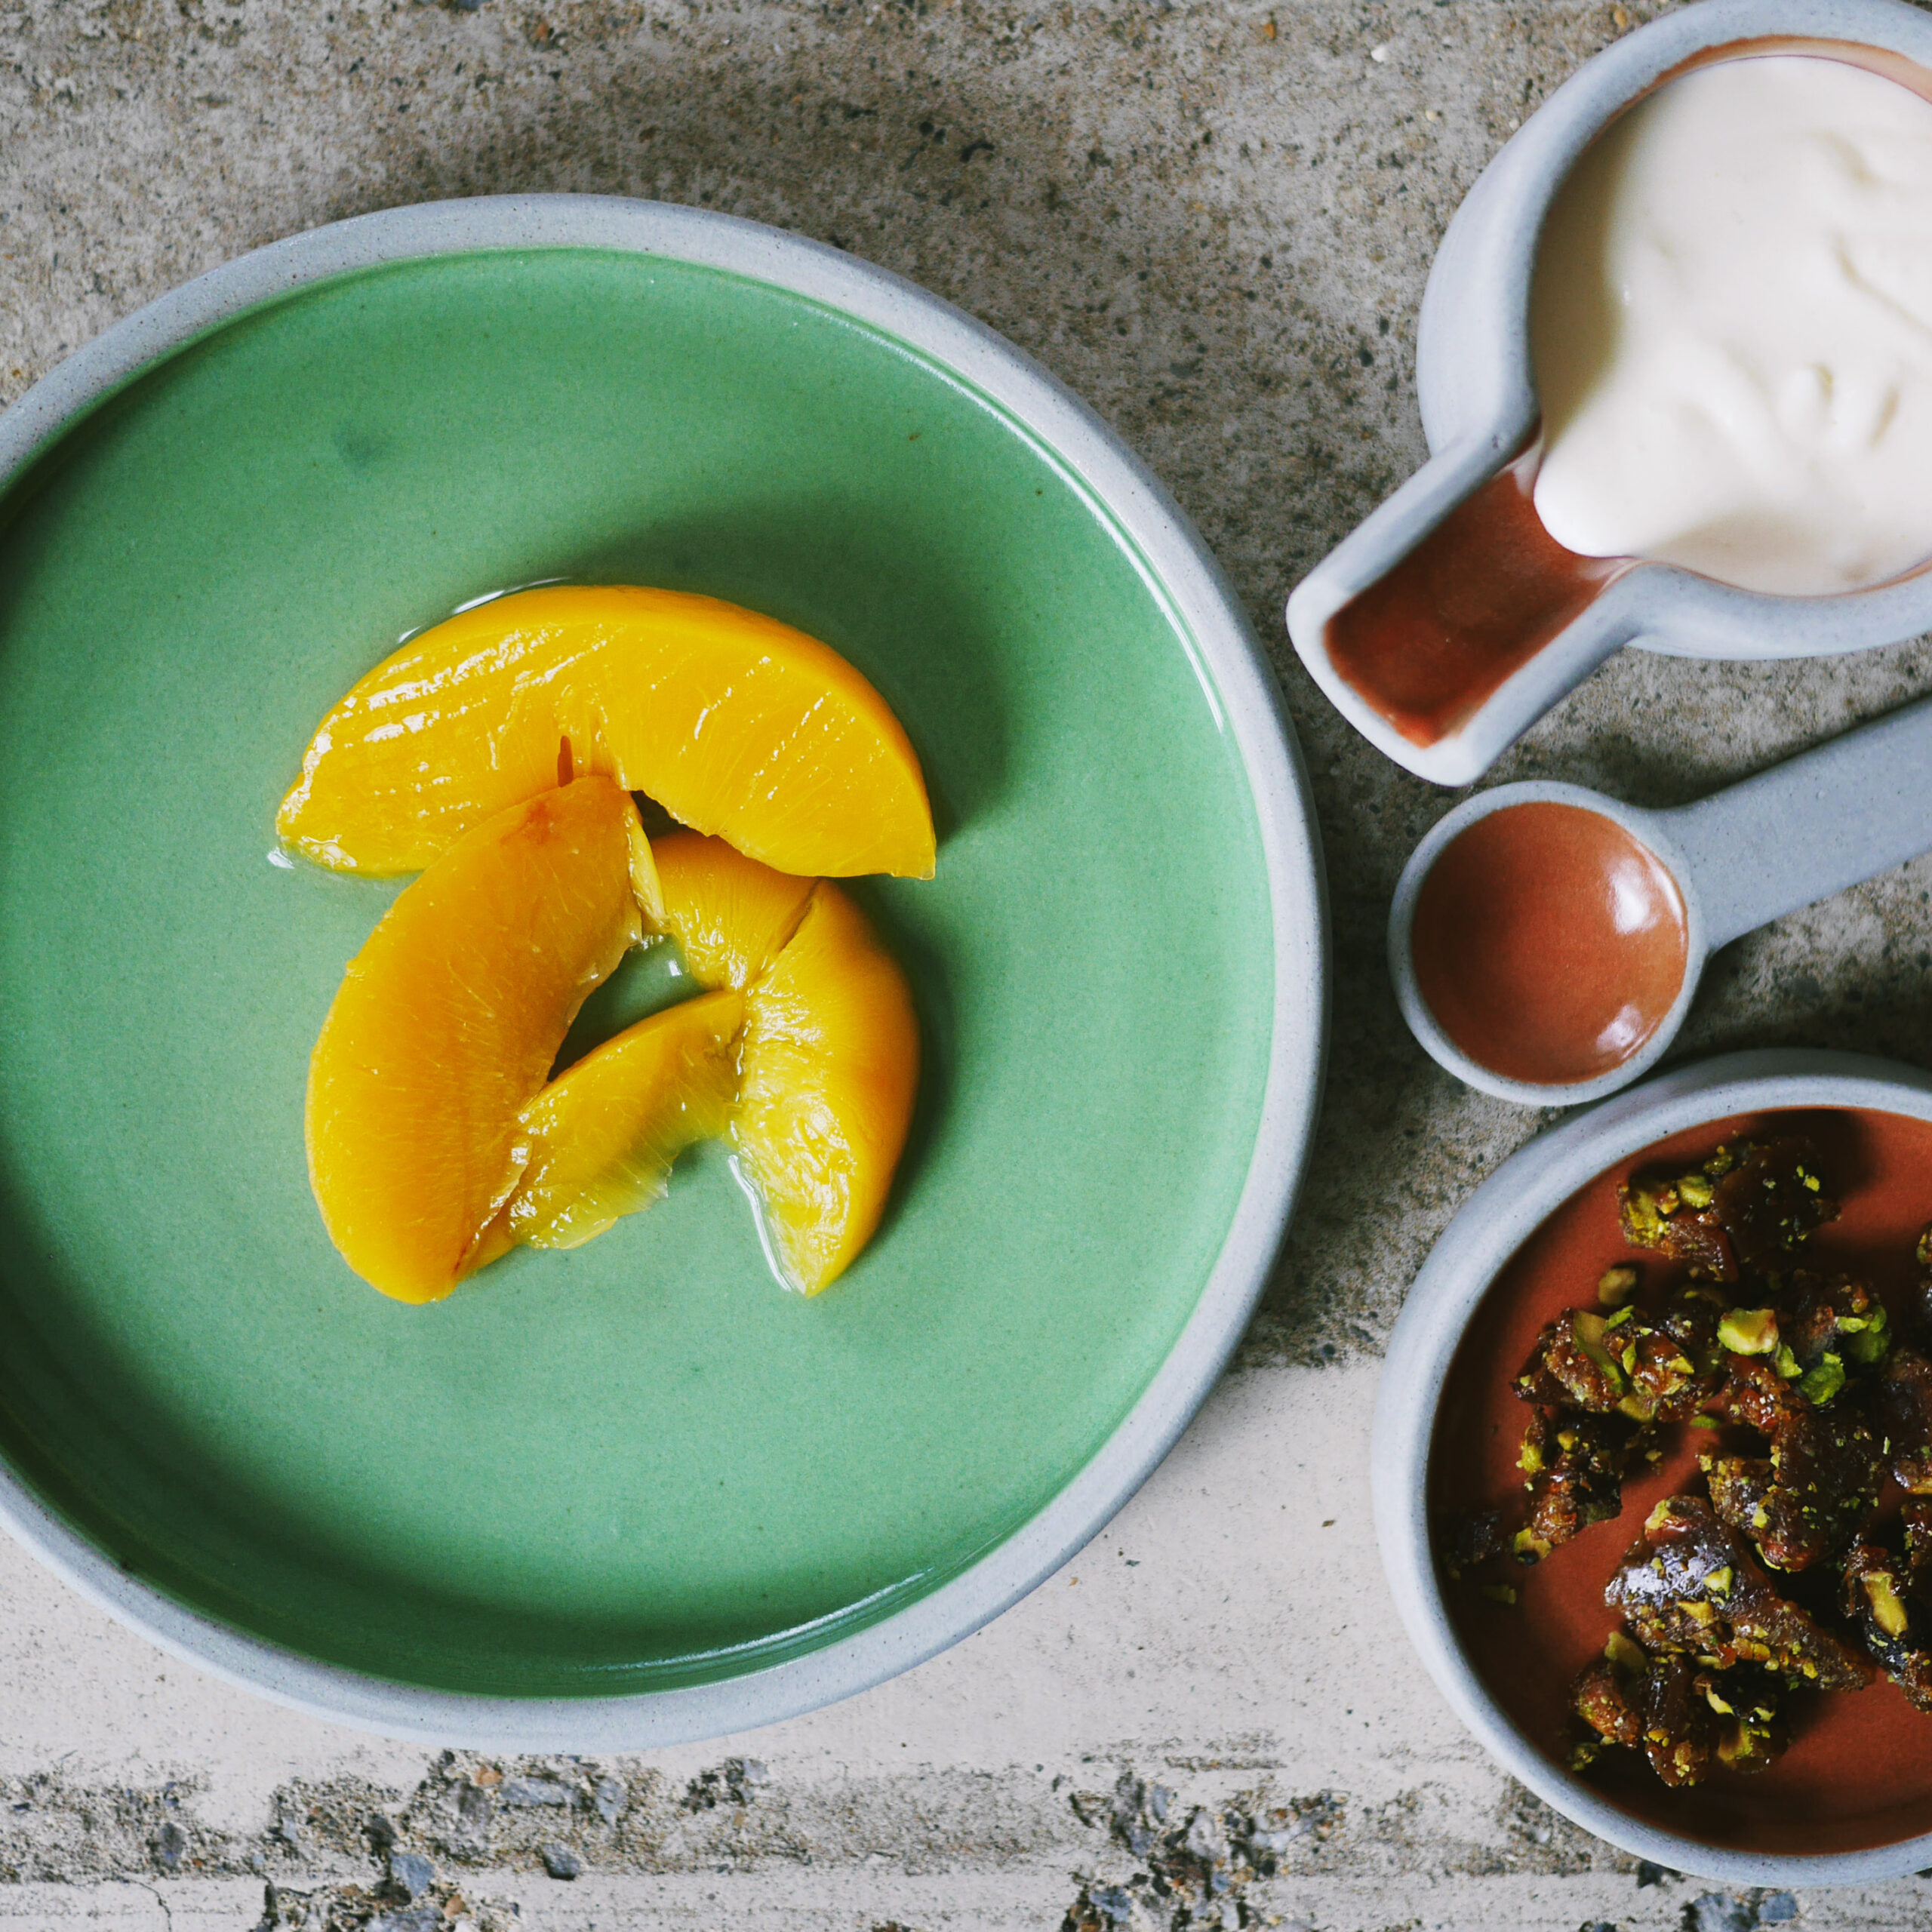 A simple peach syrup dessert with pistachios